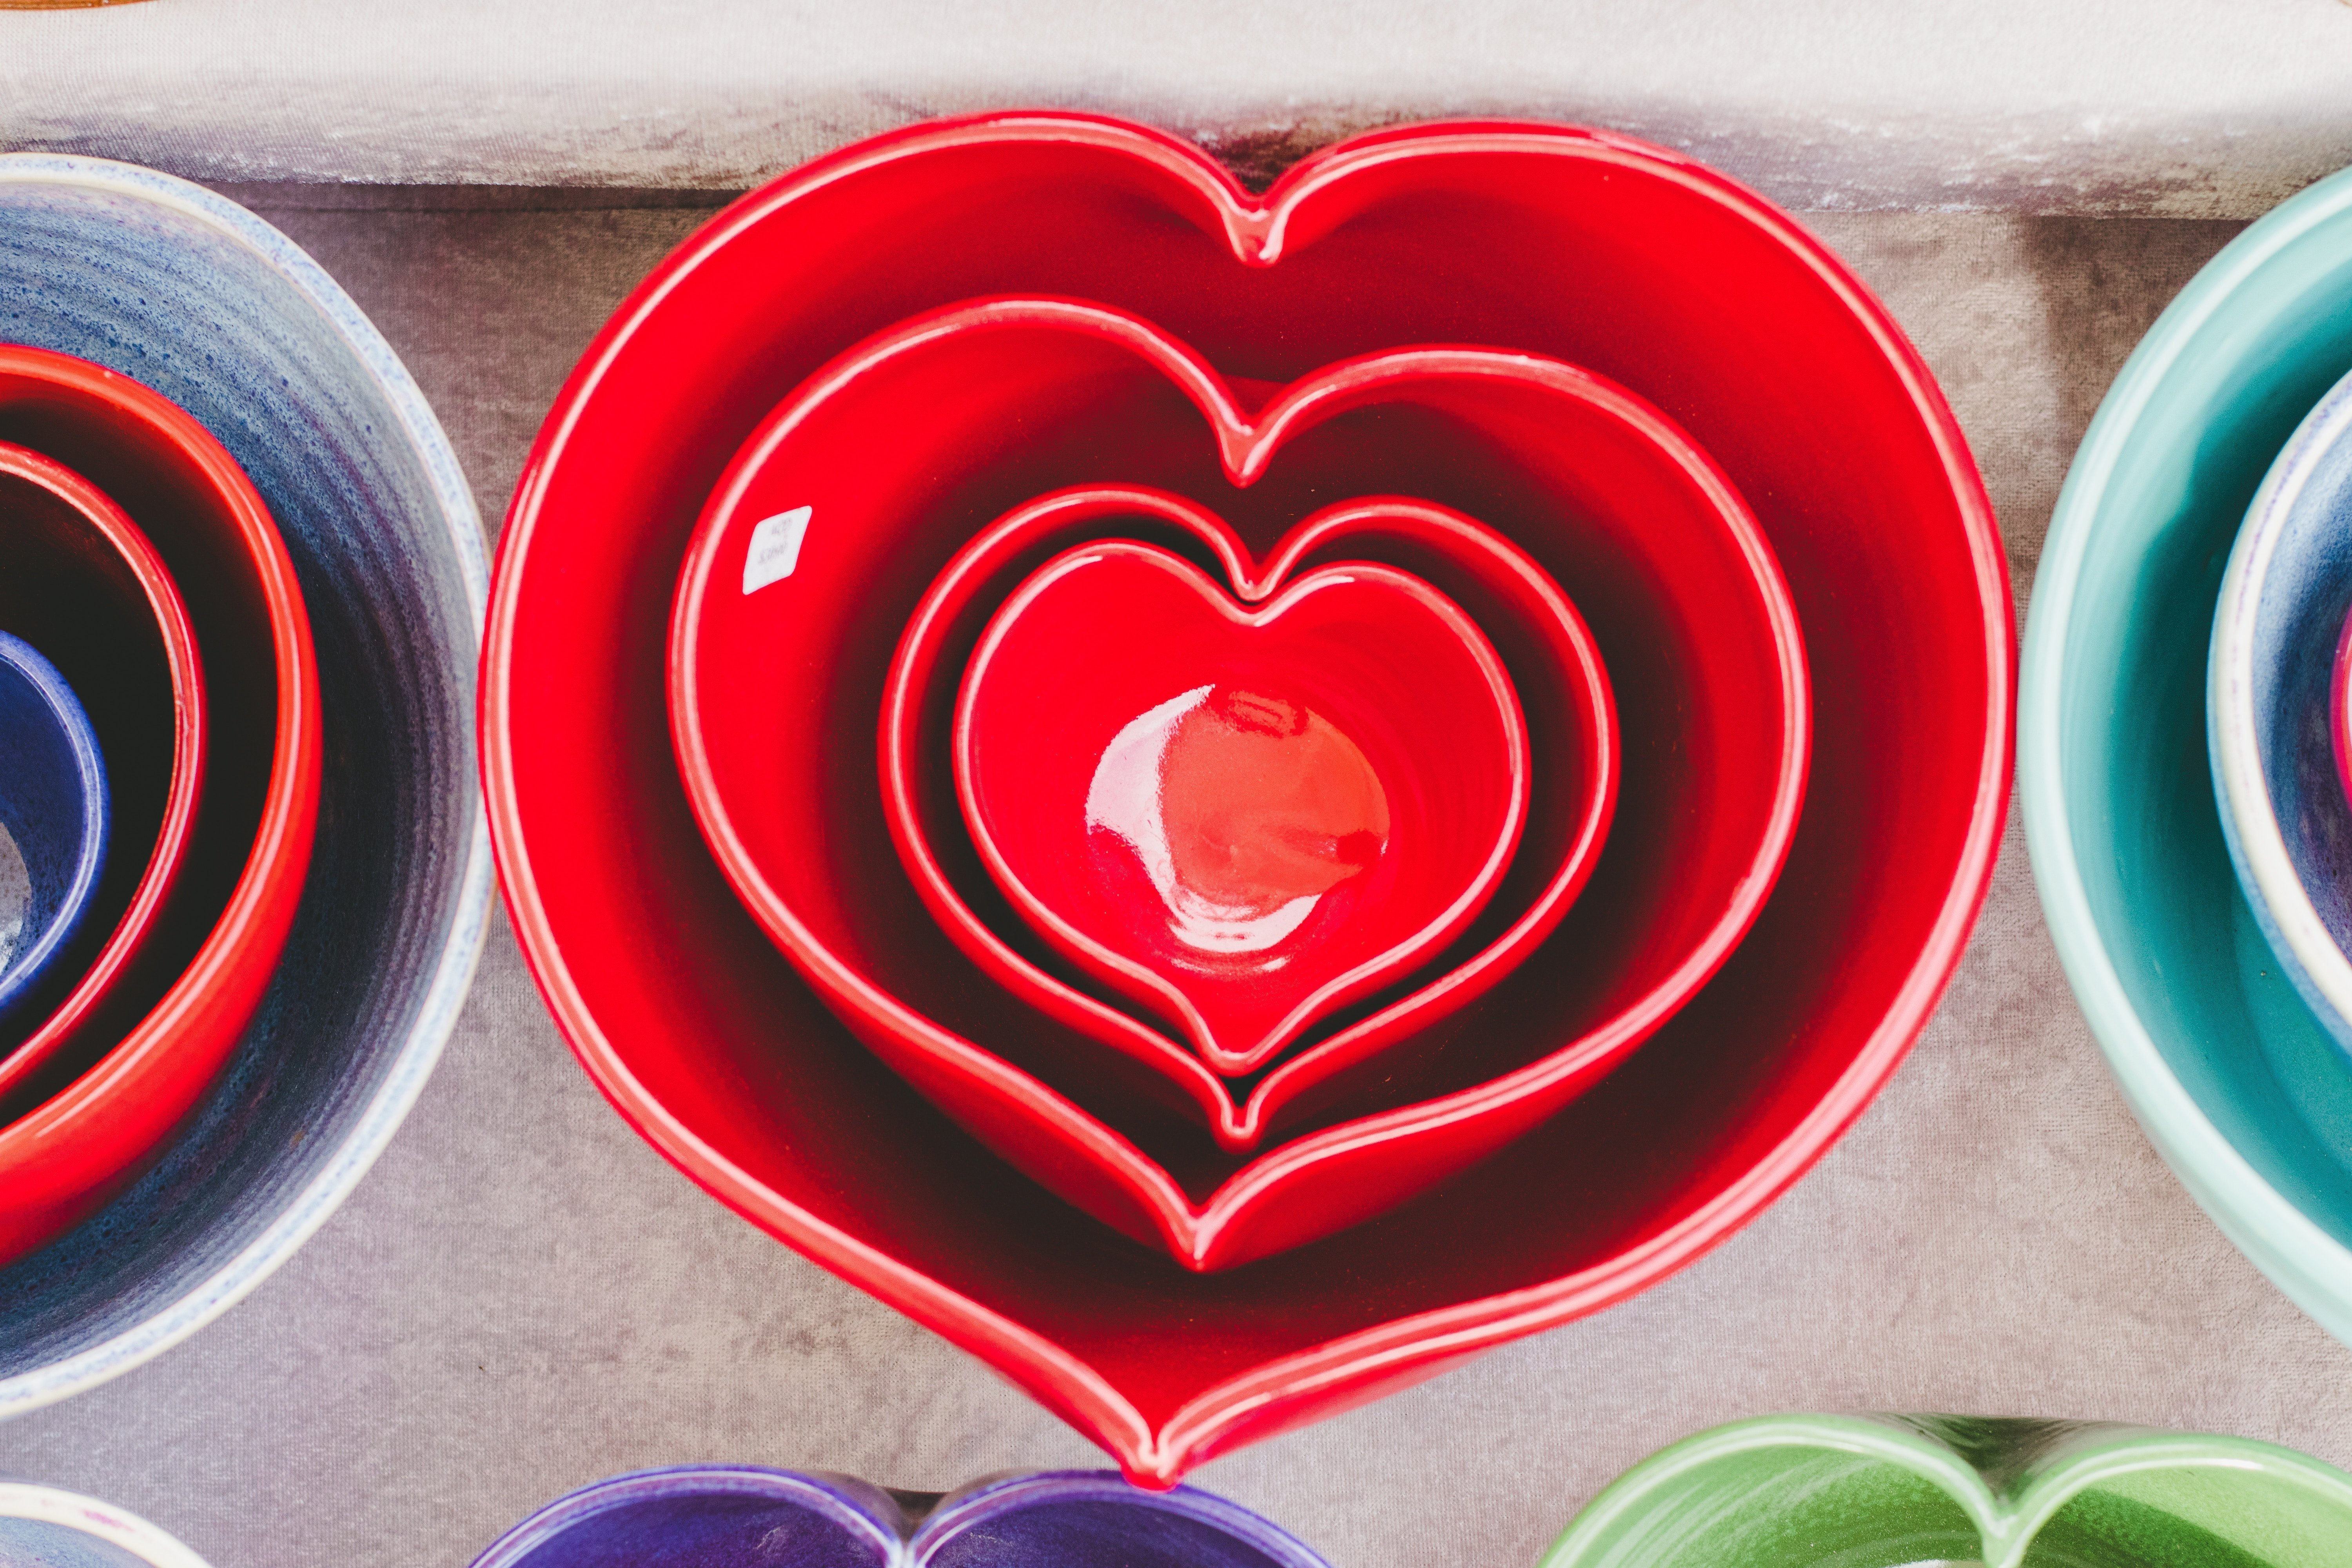 Heart shaped bowls on a dining table